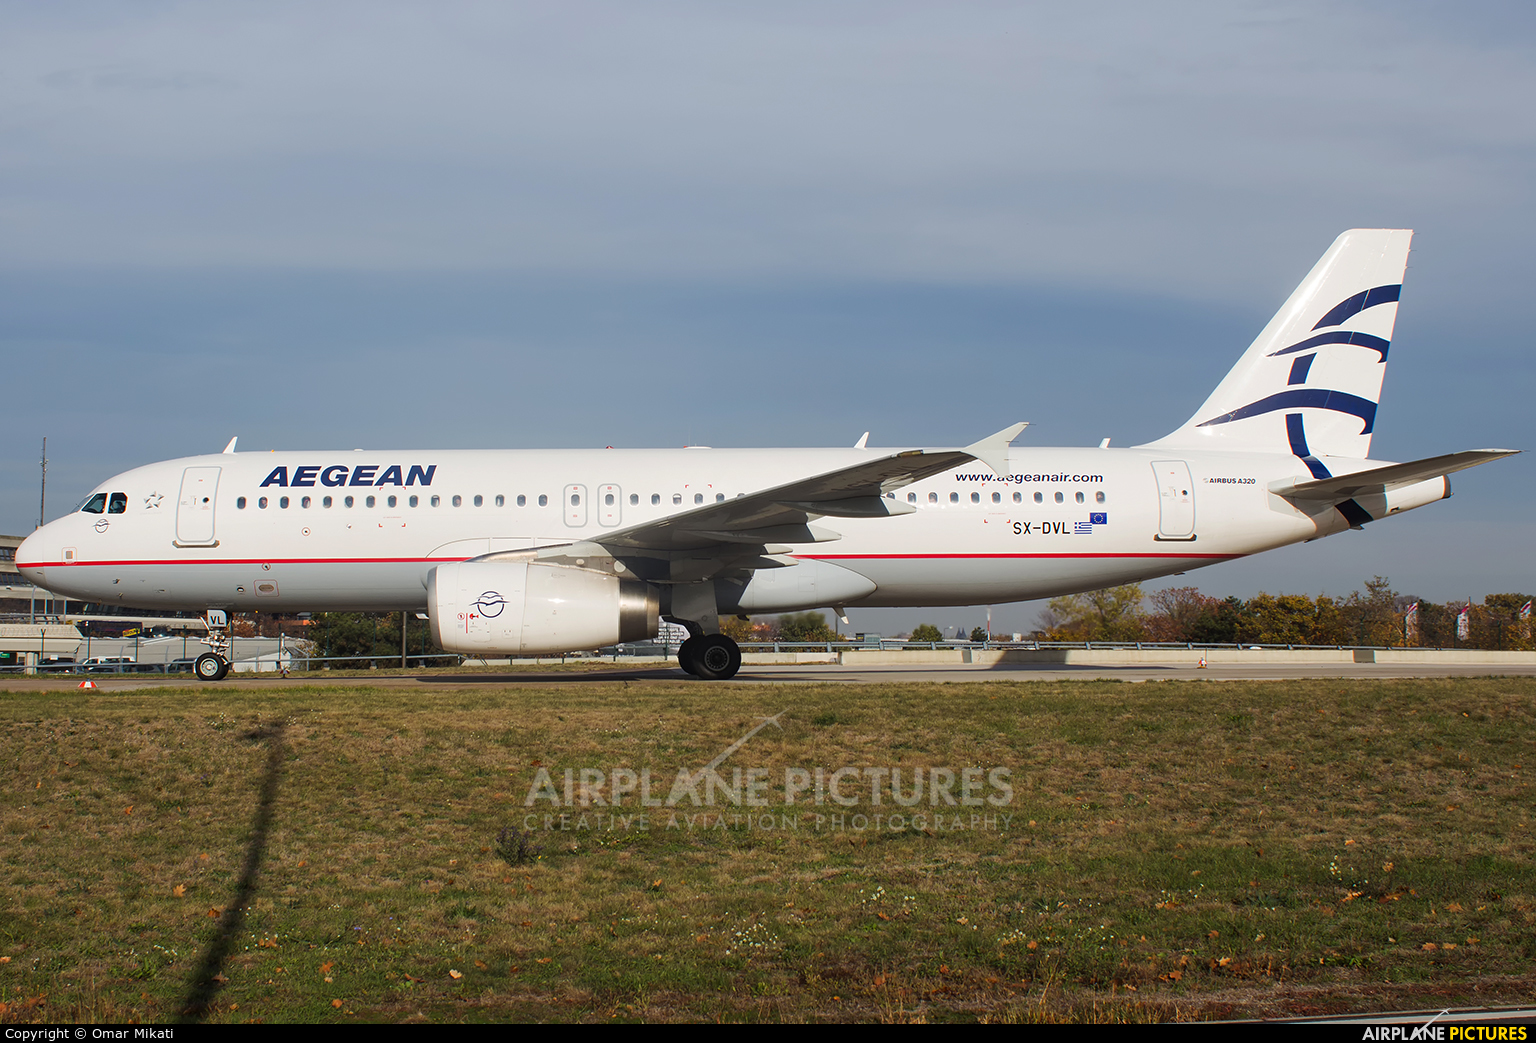 Aegean Airlines SX-DVL aircraft at Berlin - Tegel